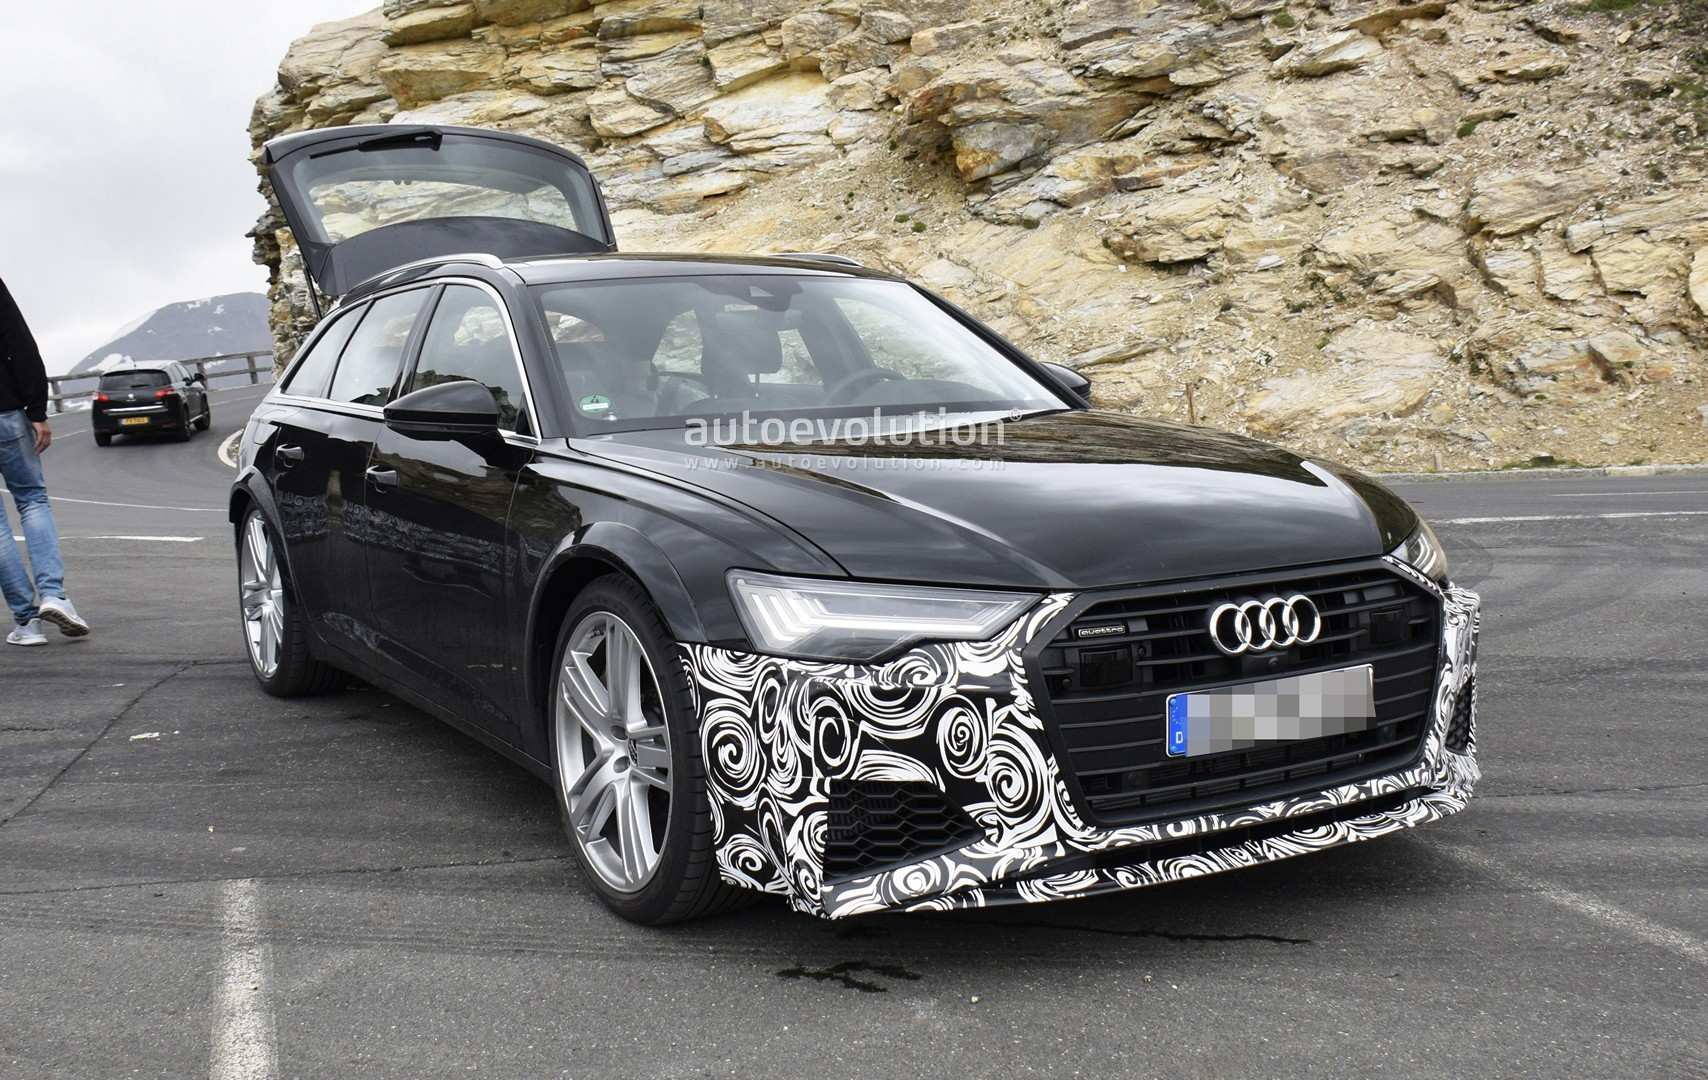 50 All New 2020 Audi Rs6 Specs and Review by 2020 Audi Rs6